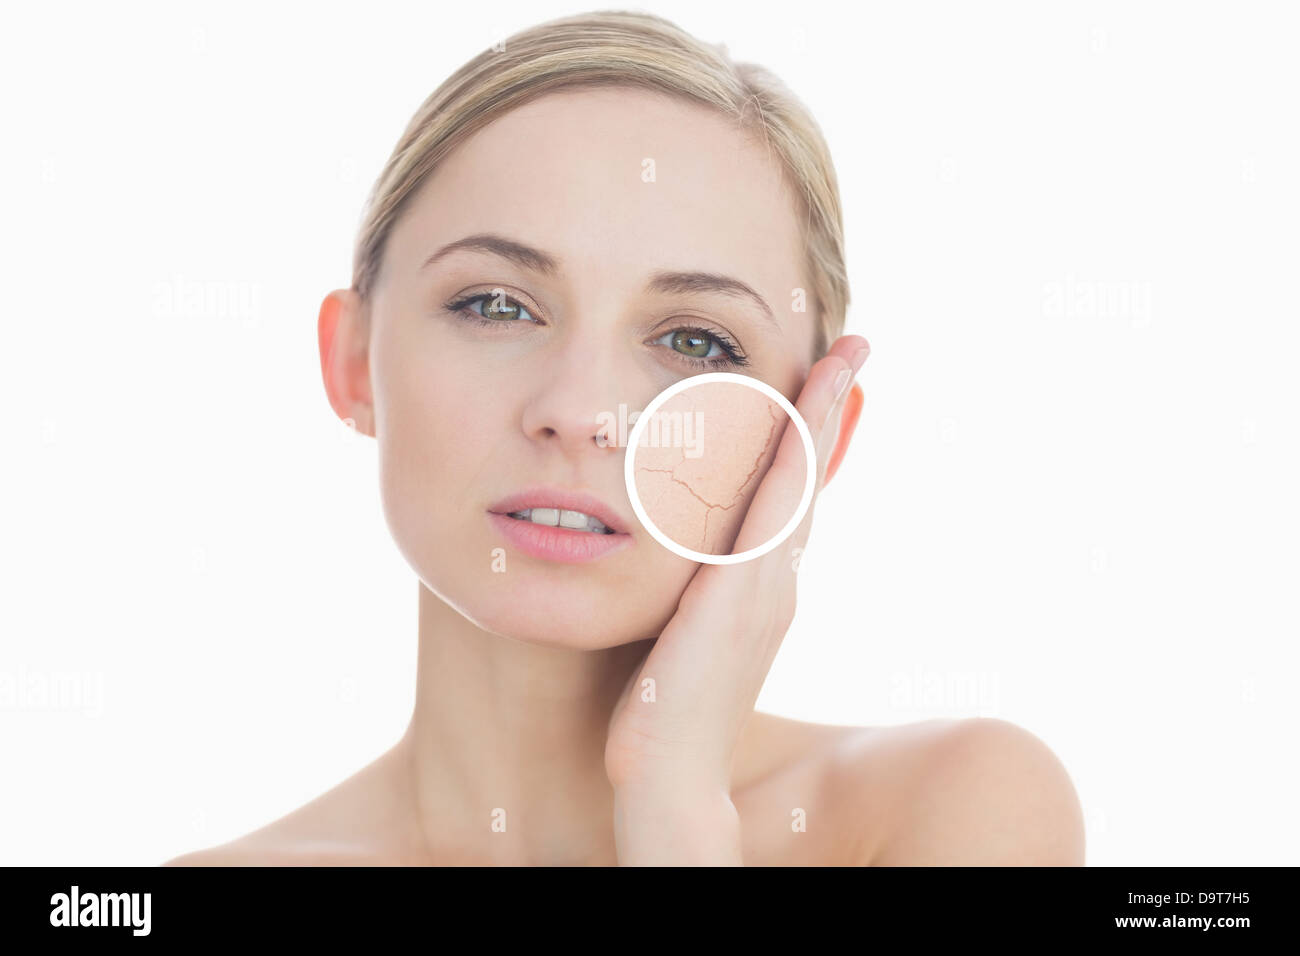 Pure woman touching her skin with close up of her wrinkles - Stock Image